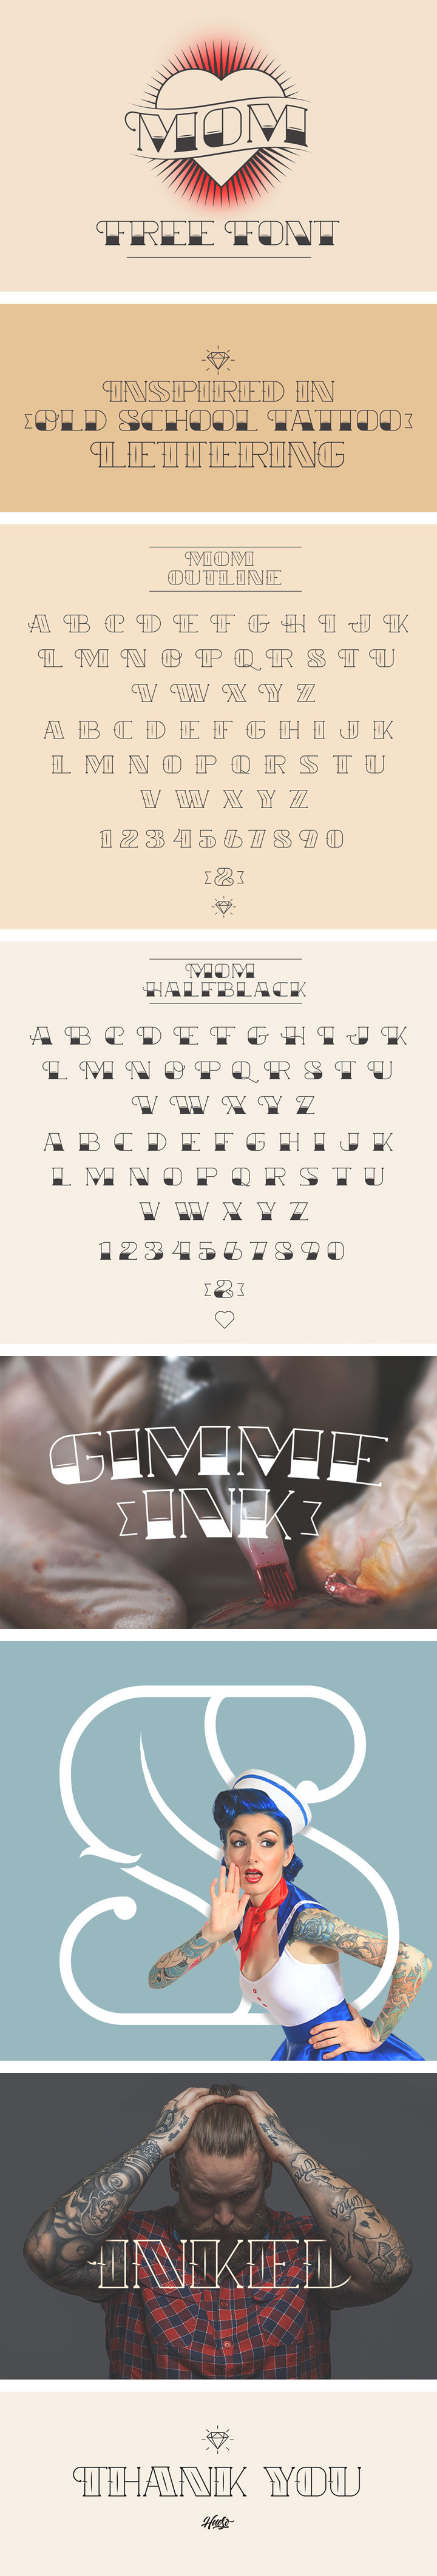 Collection of free Typefaces